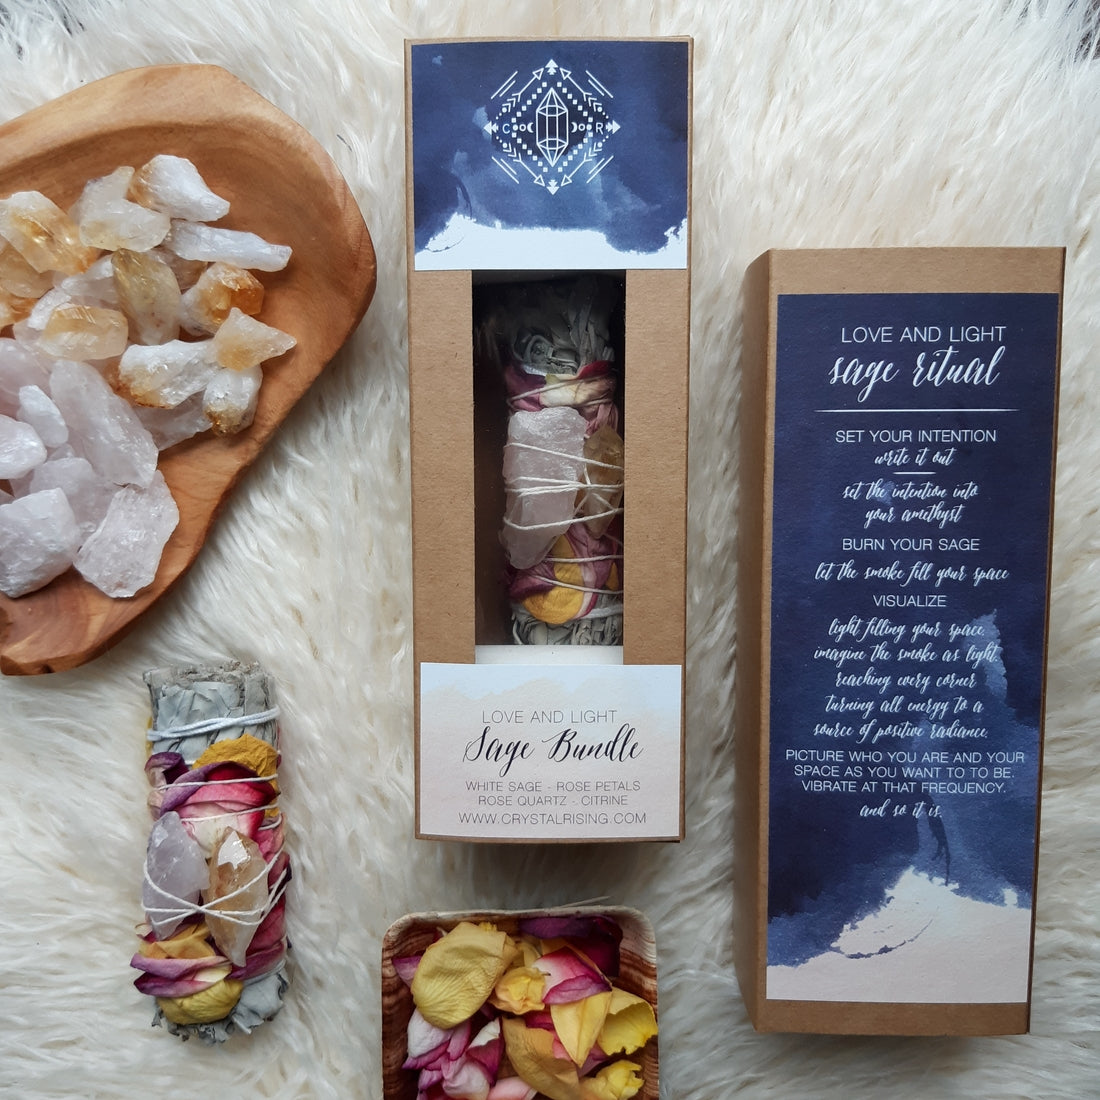 Love and Light Sage Bundle Kit - Crystal Rising for sale at Modest Hemp Co.